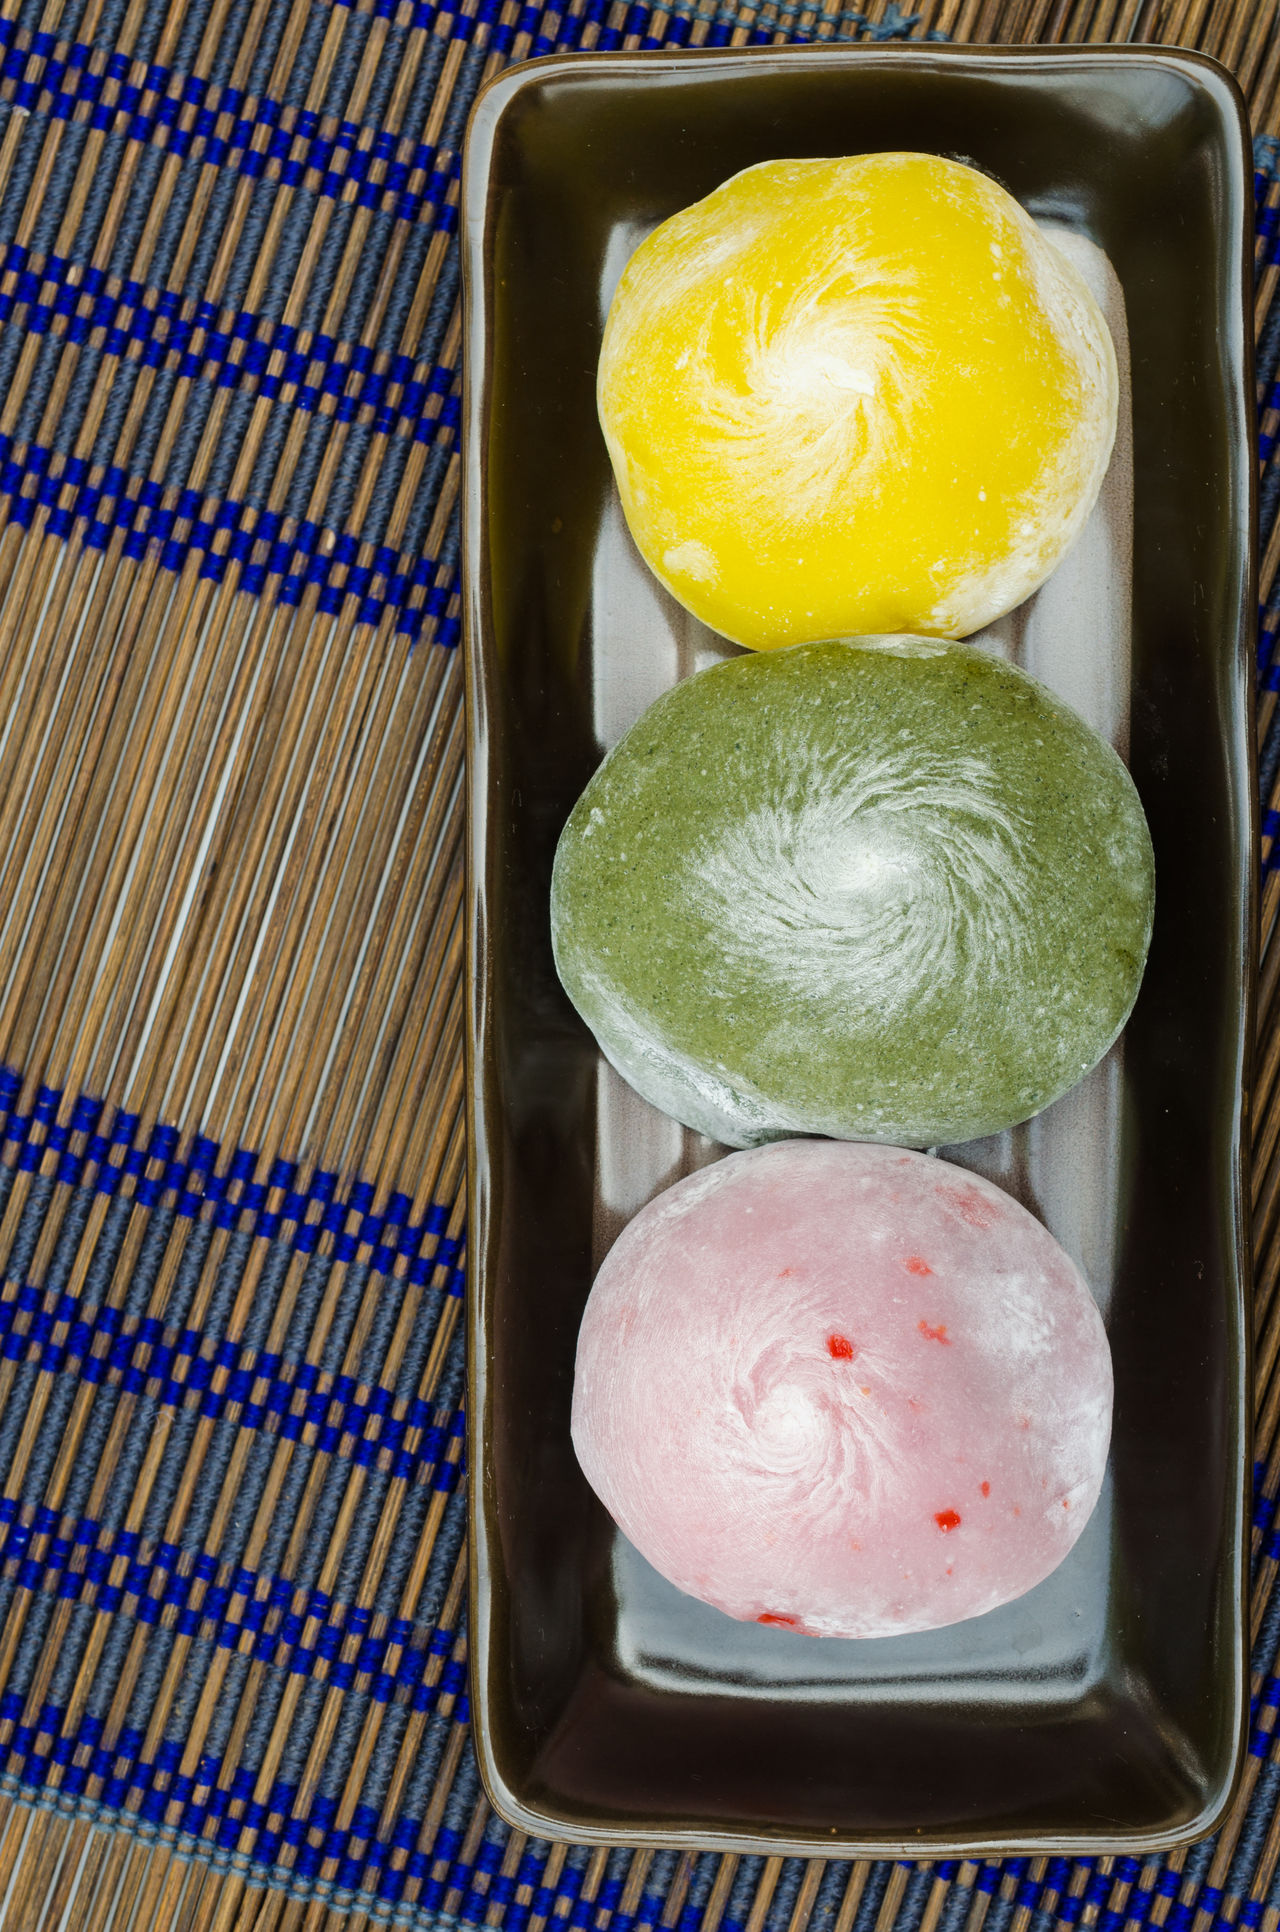 Japanese sweet made of sticky rice flour and black bean. DAIFUKU candy dish on bamboo mat. Appetizer Baked Bamboo Closeupshot Colorful Daifuku Dango Decorated Food Desserts Flour Food Freshness Green Color Icing Sugar Japanese Food Mat No People Pink Color Snack Soft Sprinkle Traditionalfood Yellow Color